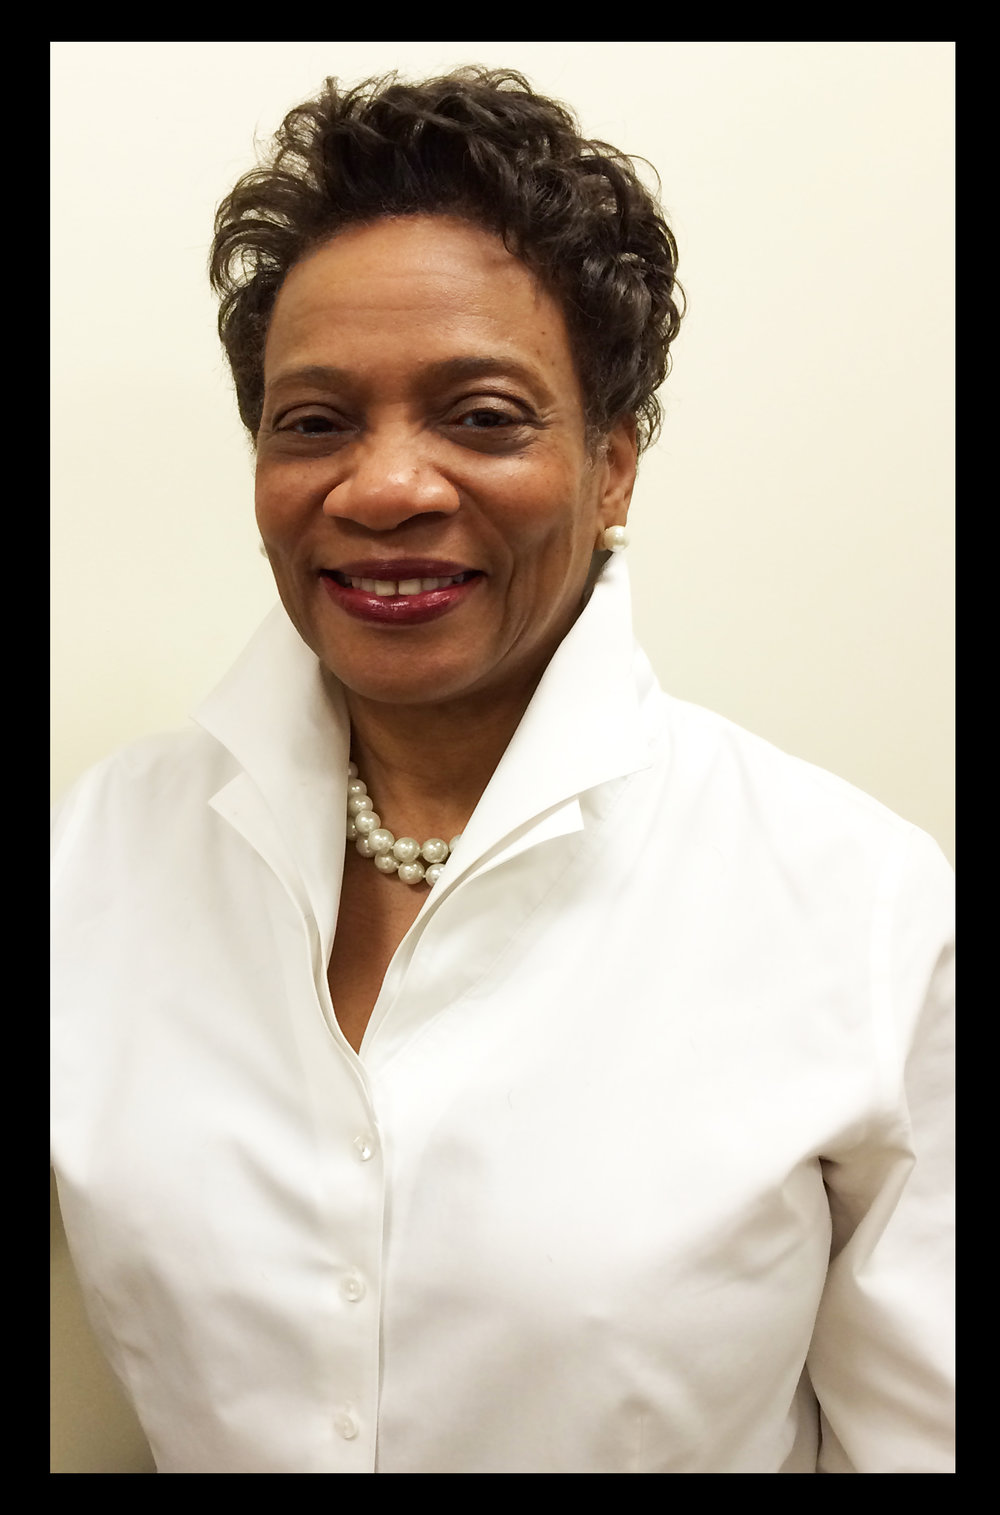 Cathy S. Gilliard, D.Min Cathy is Senior Minister at Park Avenue United Methodist Church in New York. Her extensive professional expertise includes community building, advocacy for vulnerable women, and leading mission based organizations. She has degrees from North Carolina A&T State University, Rutgers State University, Duke Divinity School, and United Theological Seminary.